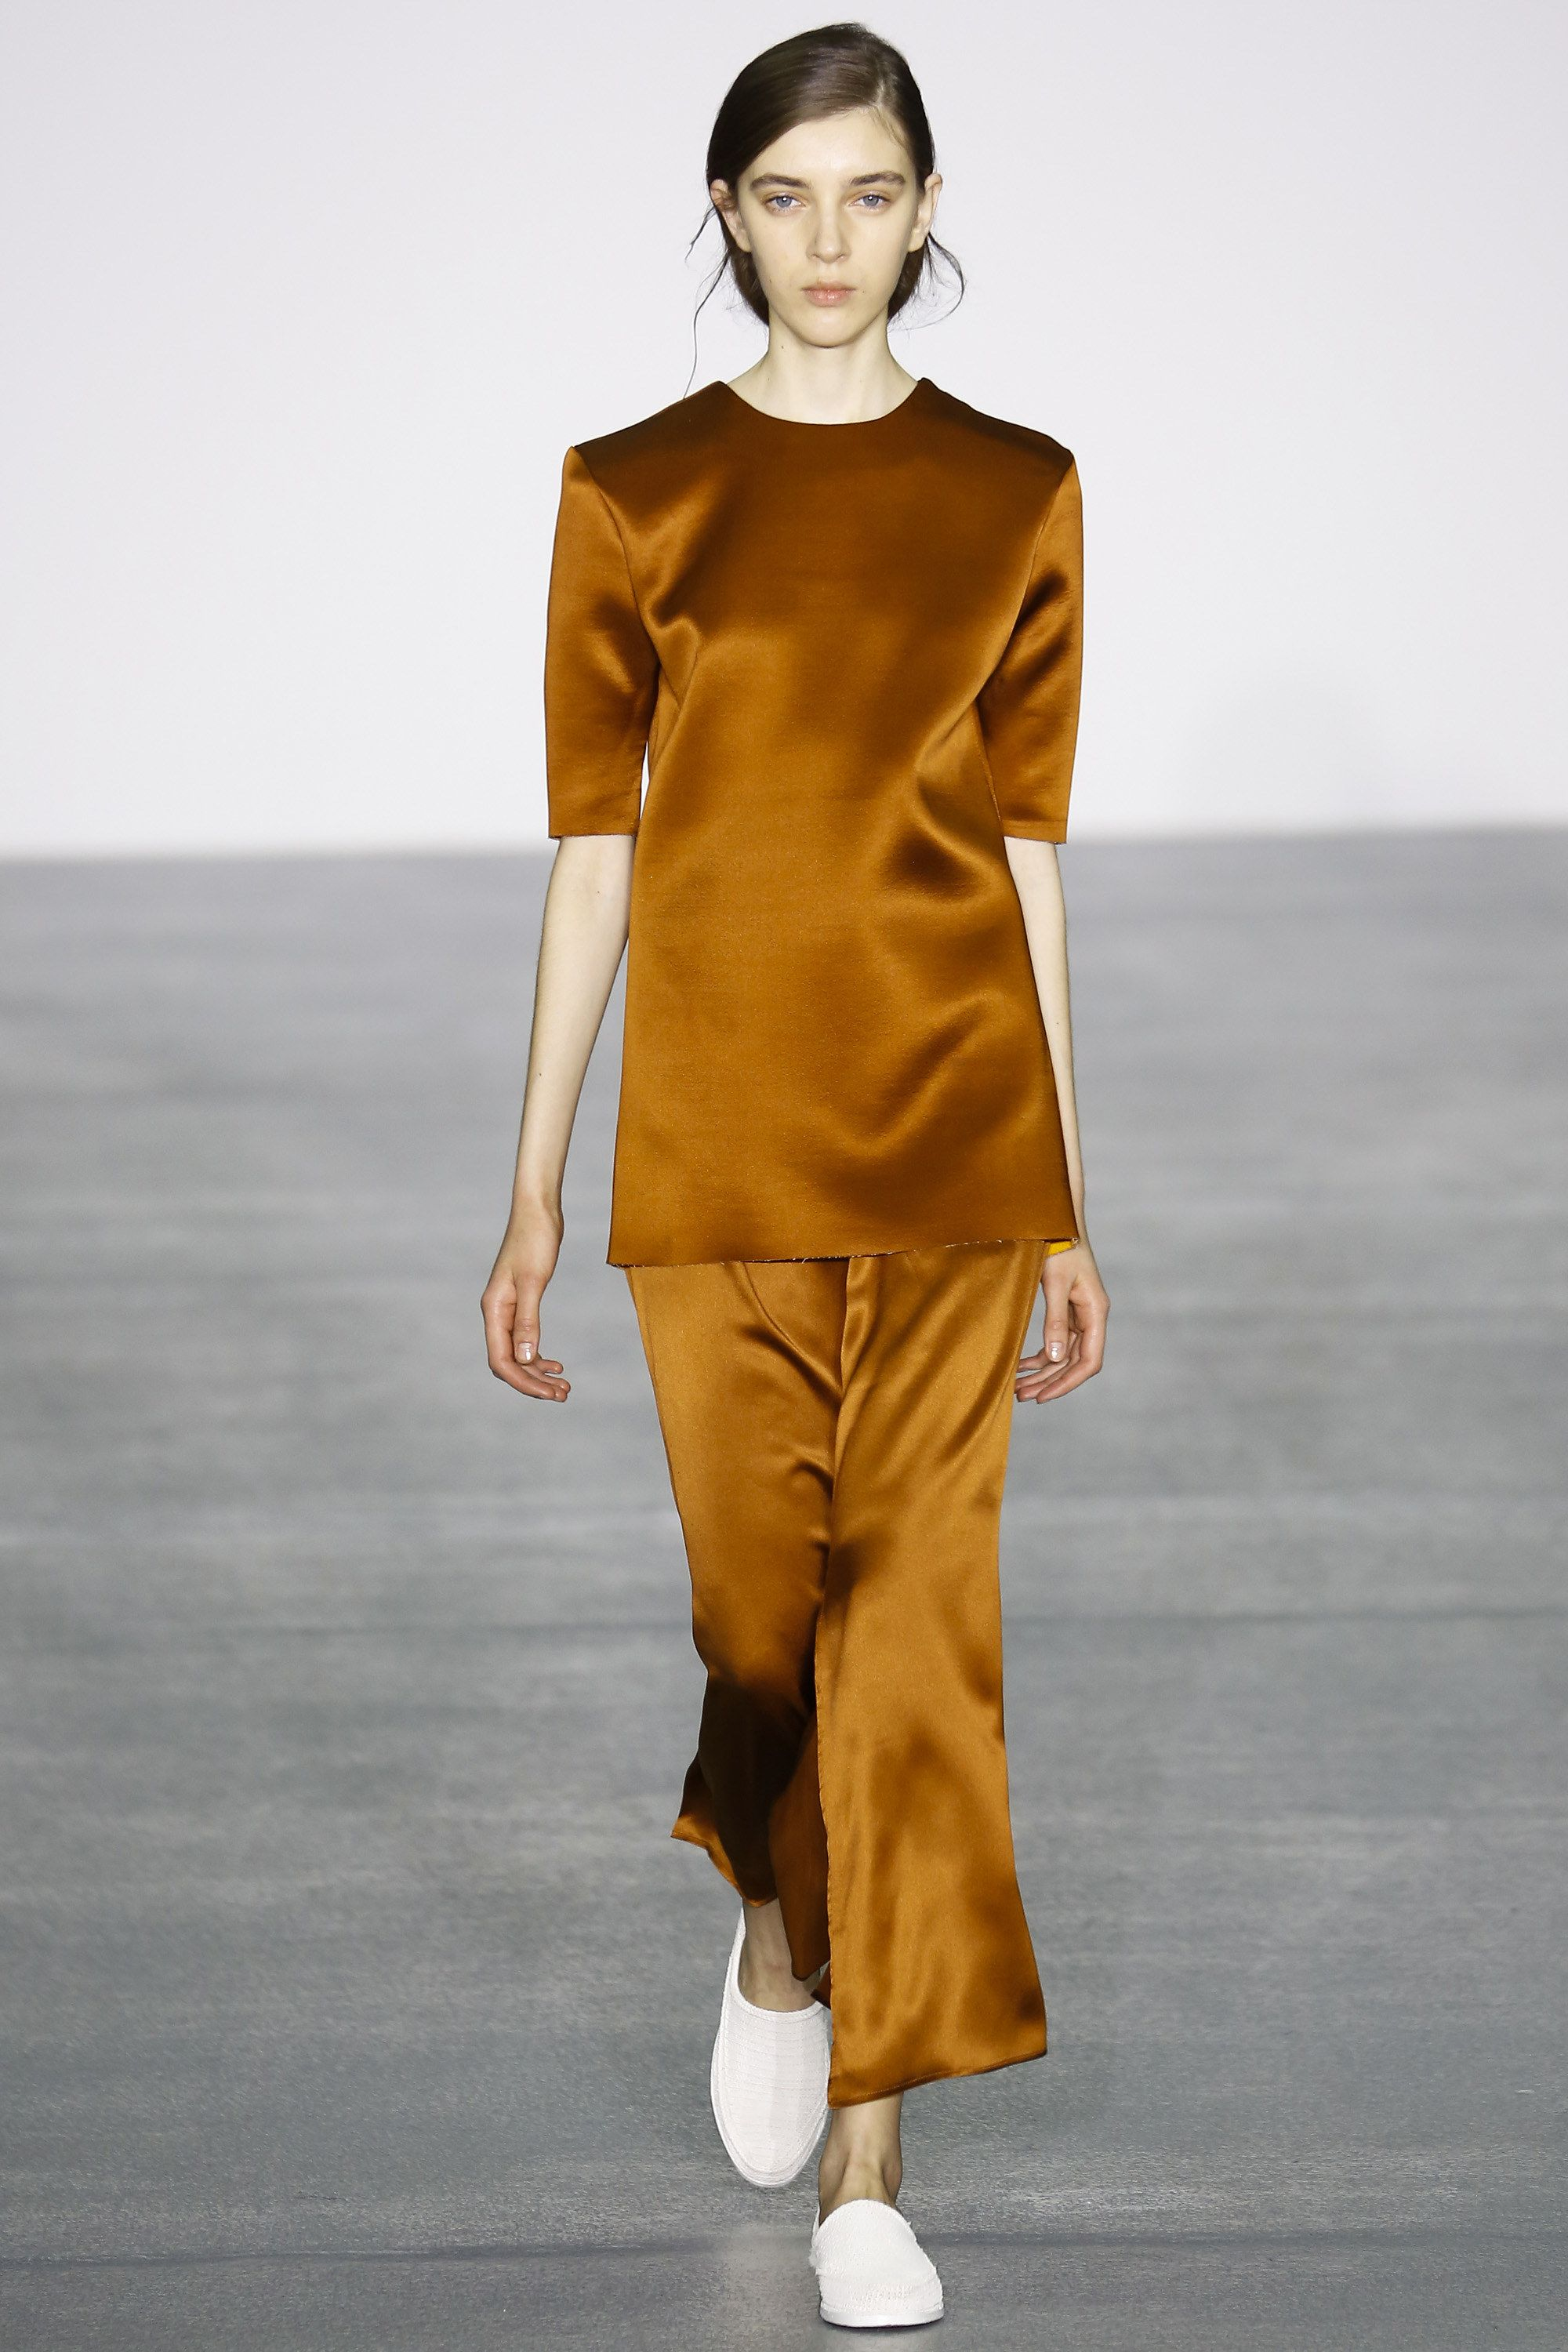 1205 Fall 2016 Ready-to-Wear Fashion Show  Diversity for this 1205 show was very poor   http://www.theclosetfeminist.ca/  http://www.vogue.com/fashion-shows/fall-2016-ready-to-wear/1205/slideshow/collection#11